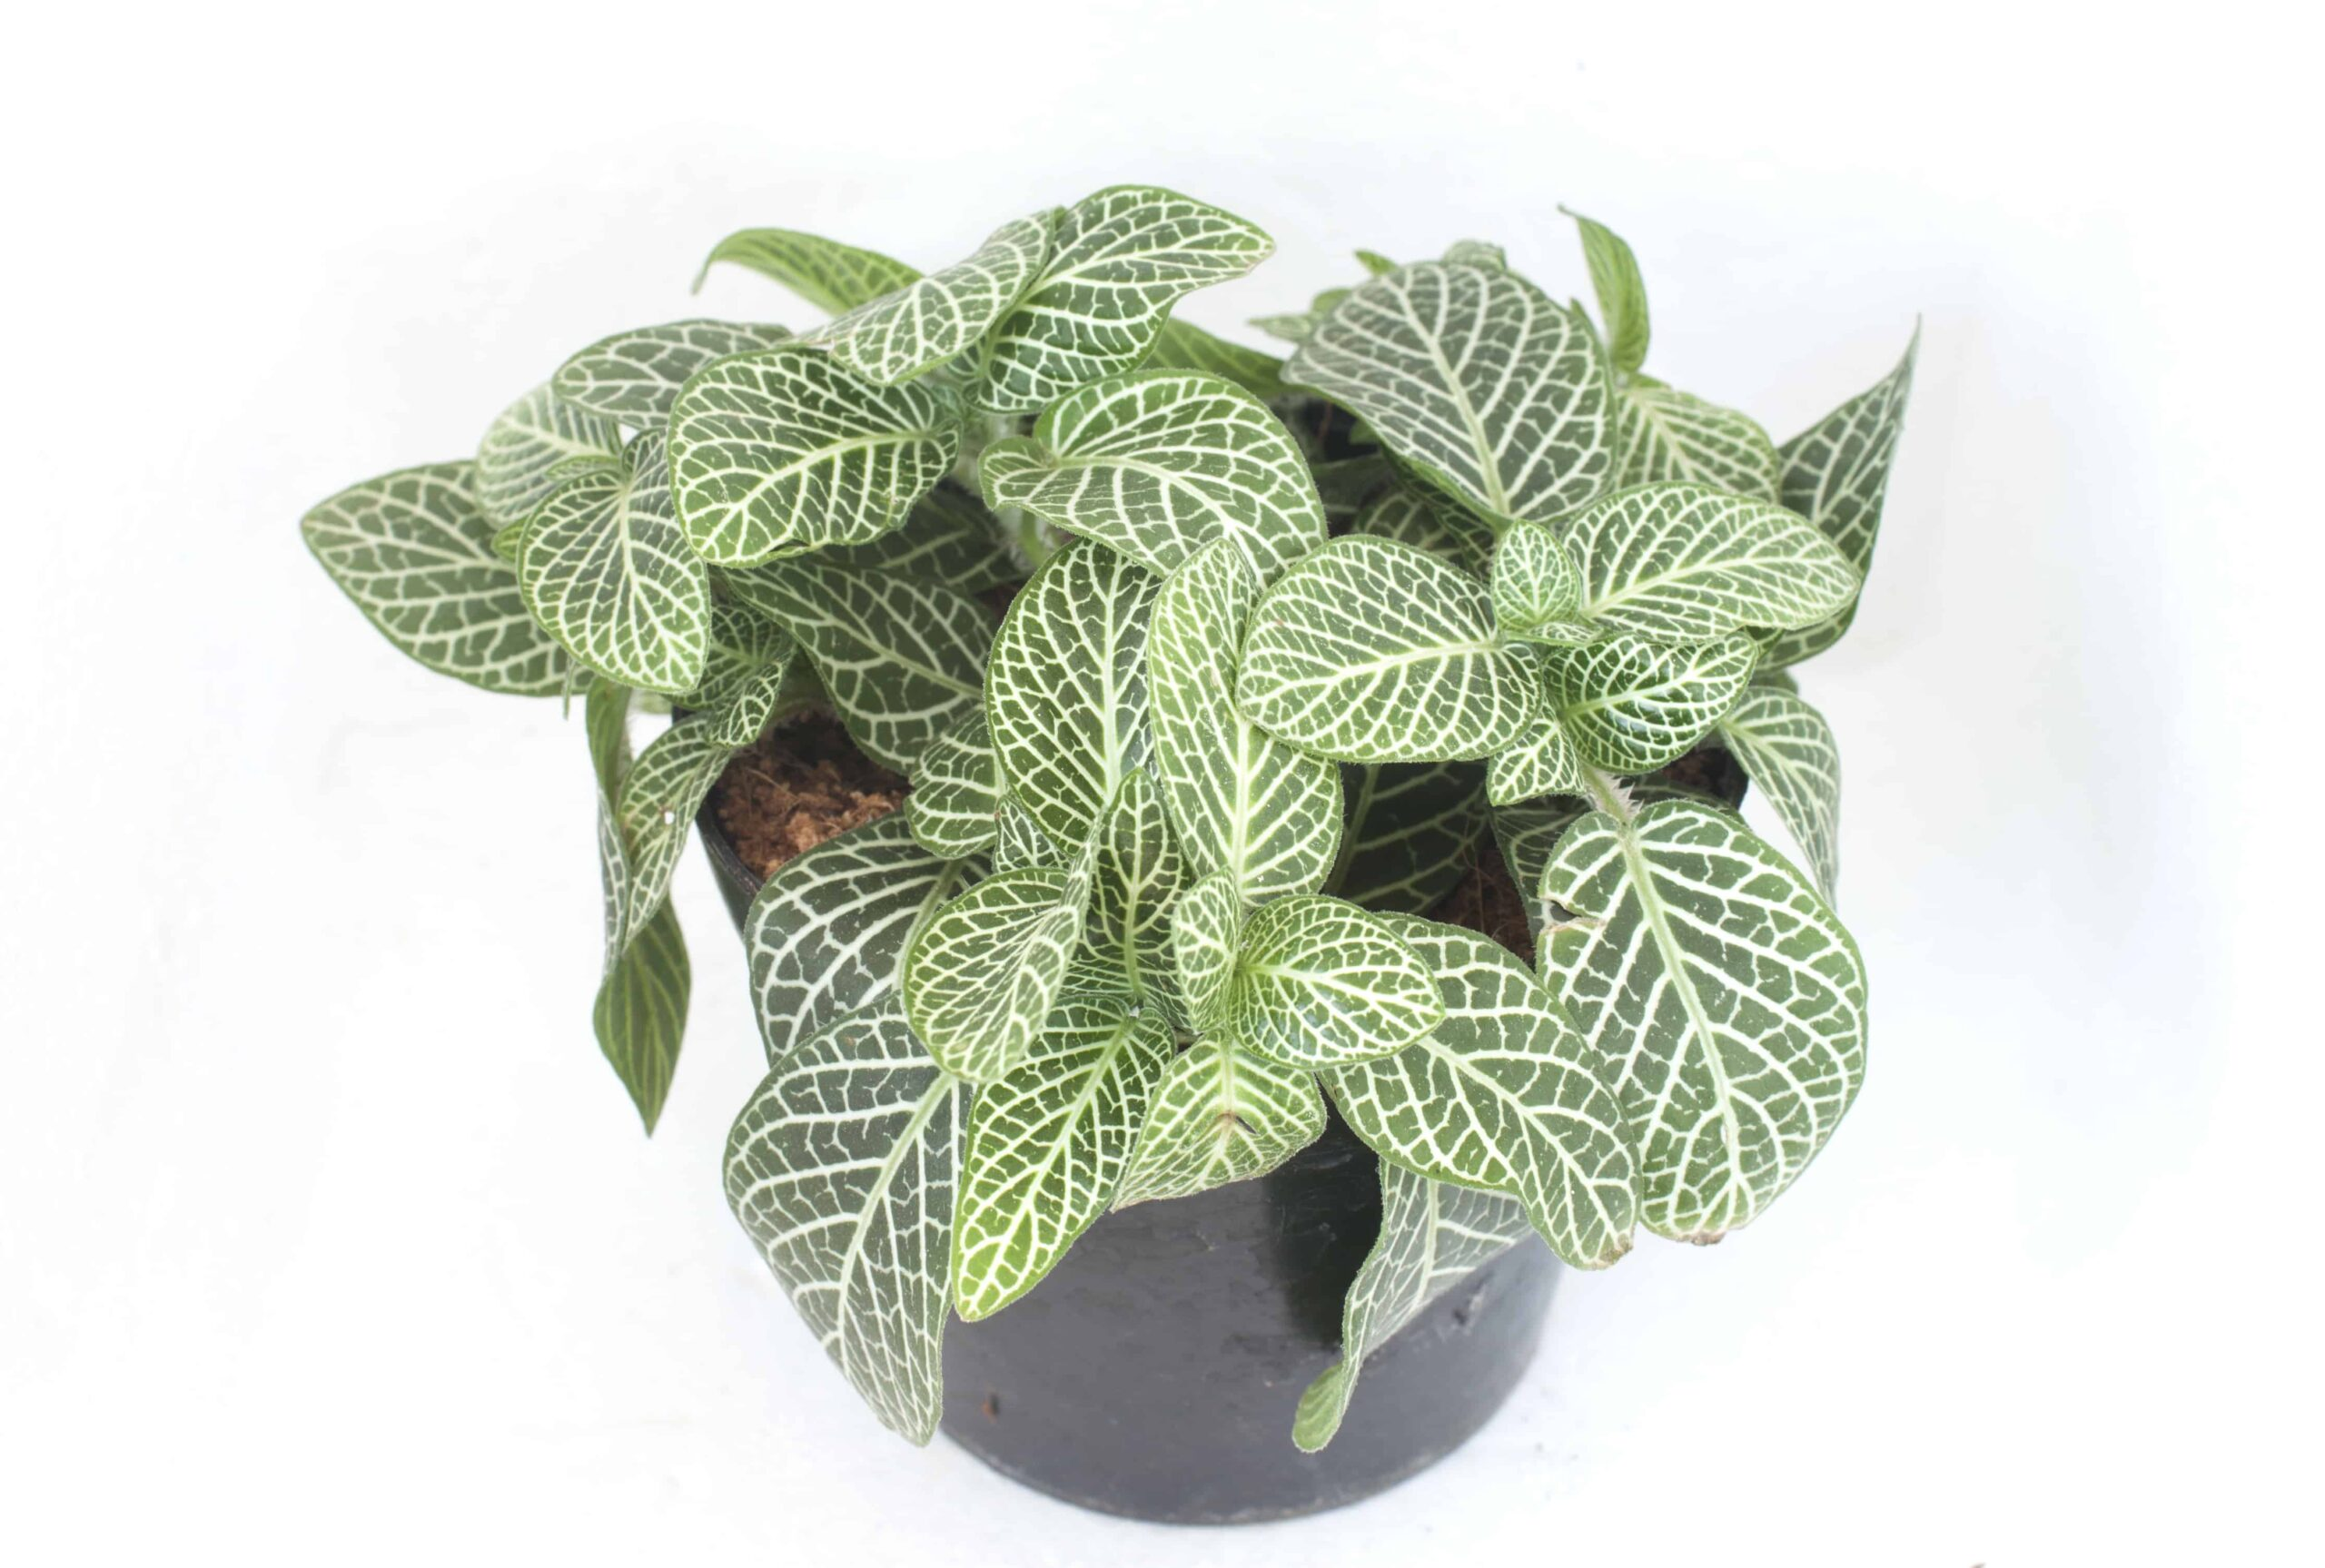 10 Rare Unique Houseplants You Will Love Includes Care Instructions